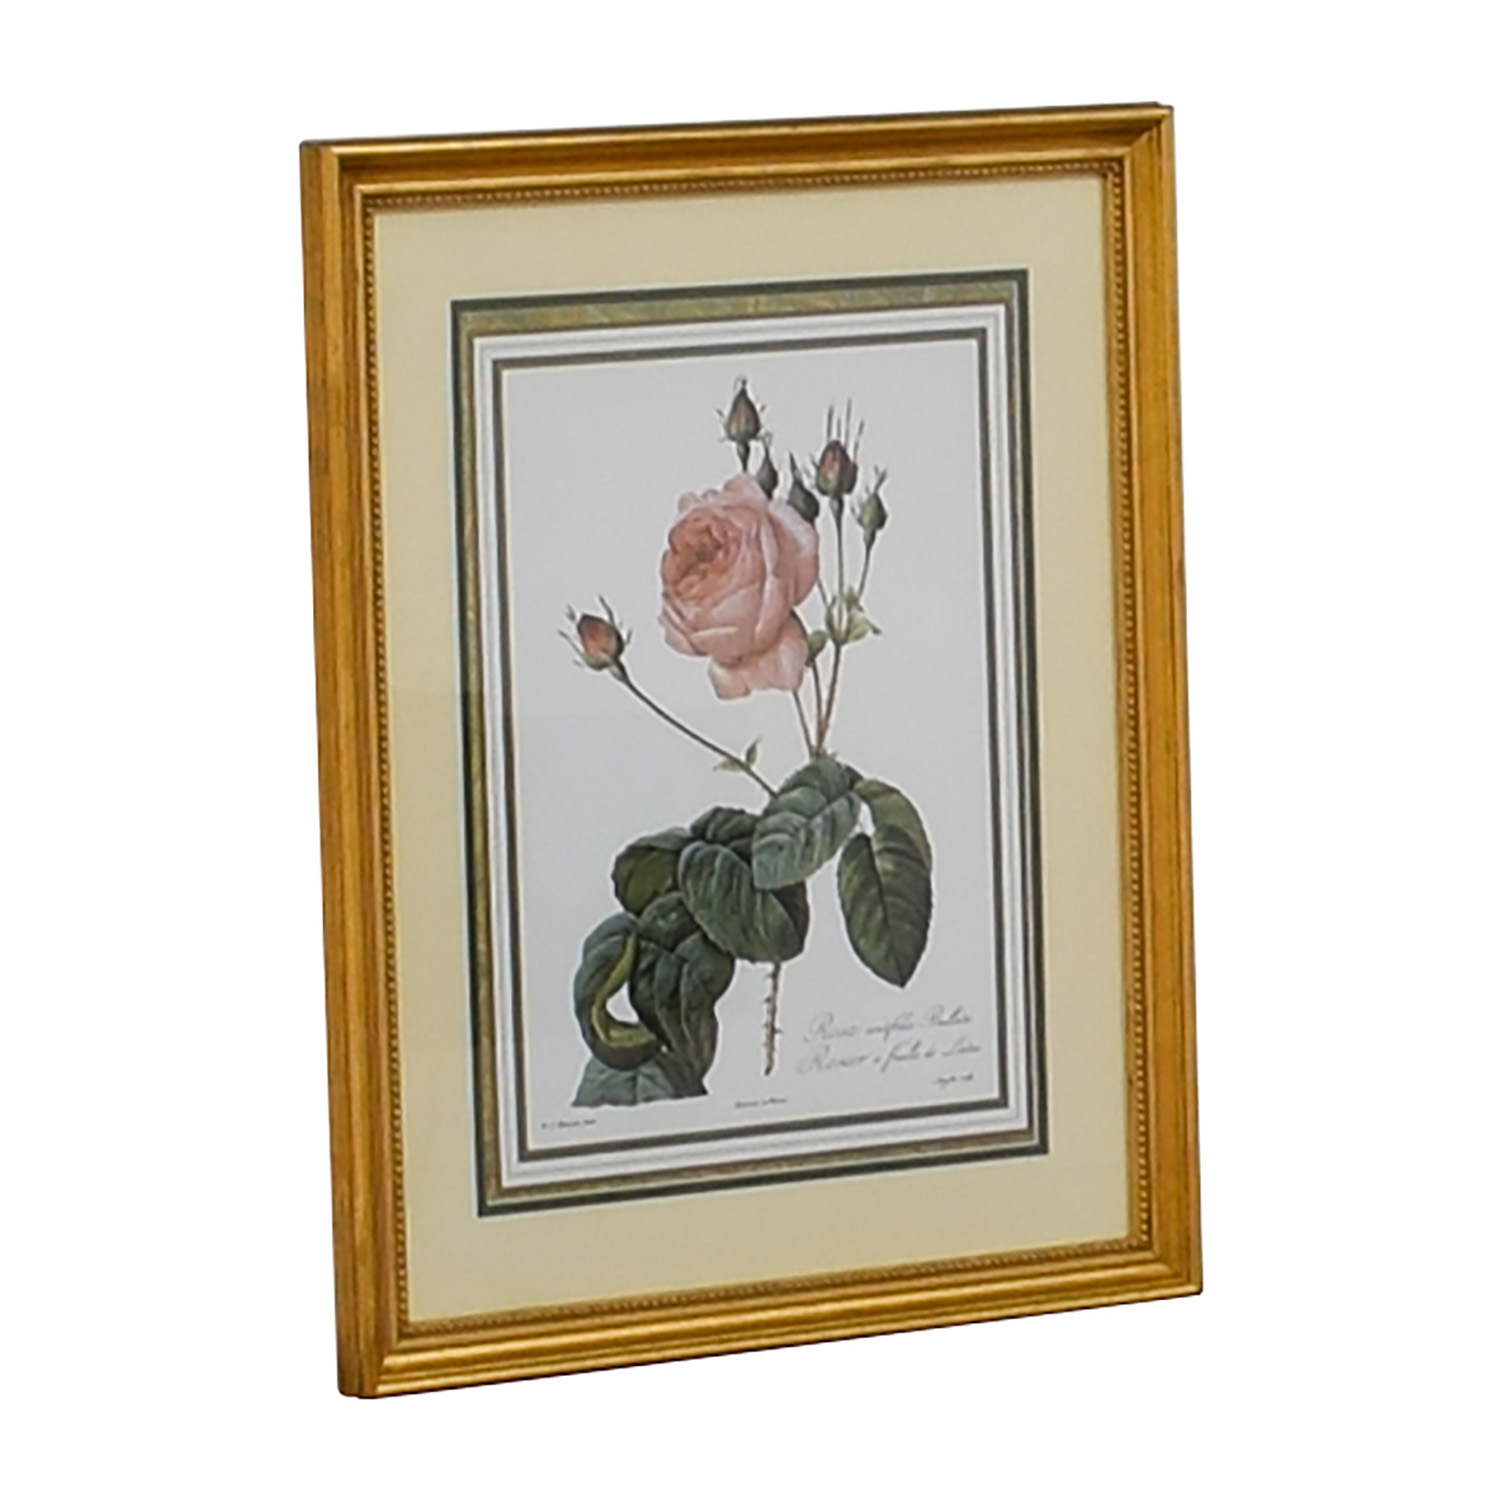 The Museum Collection The Museum Collection Rosier a Feuilles de Laitue Floral Print for sale